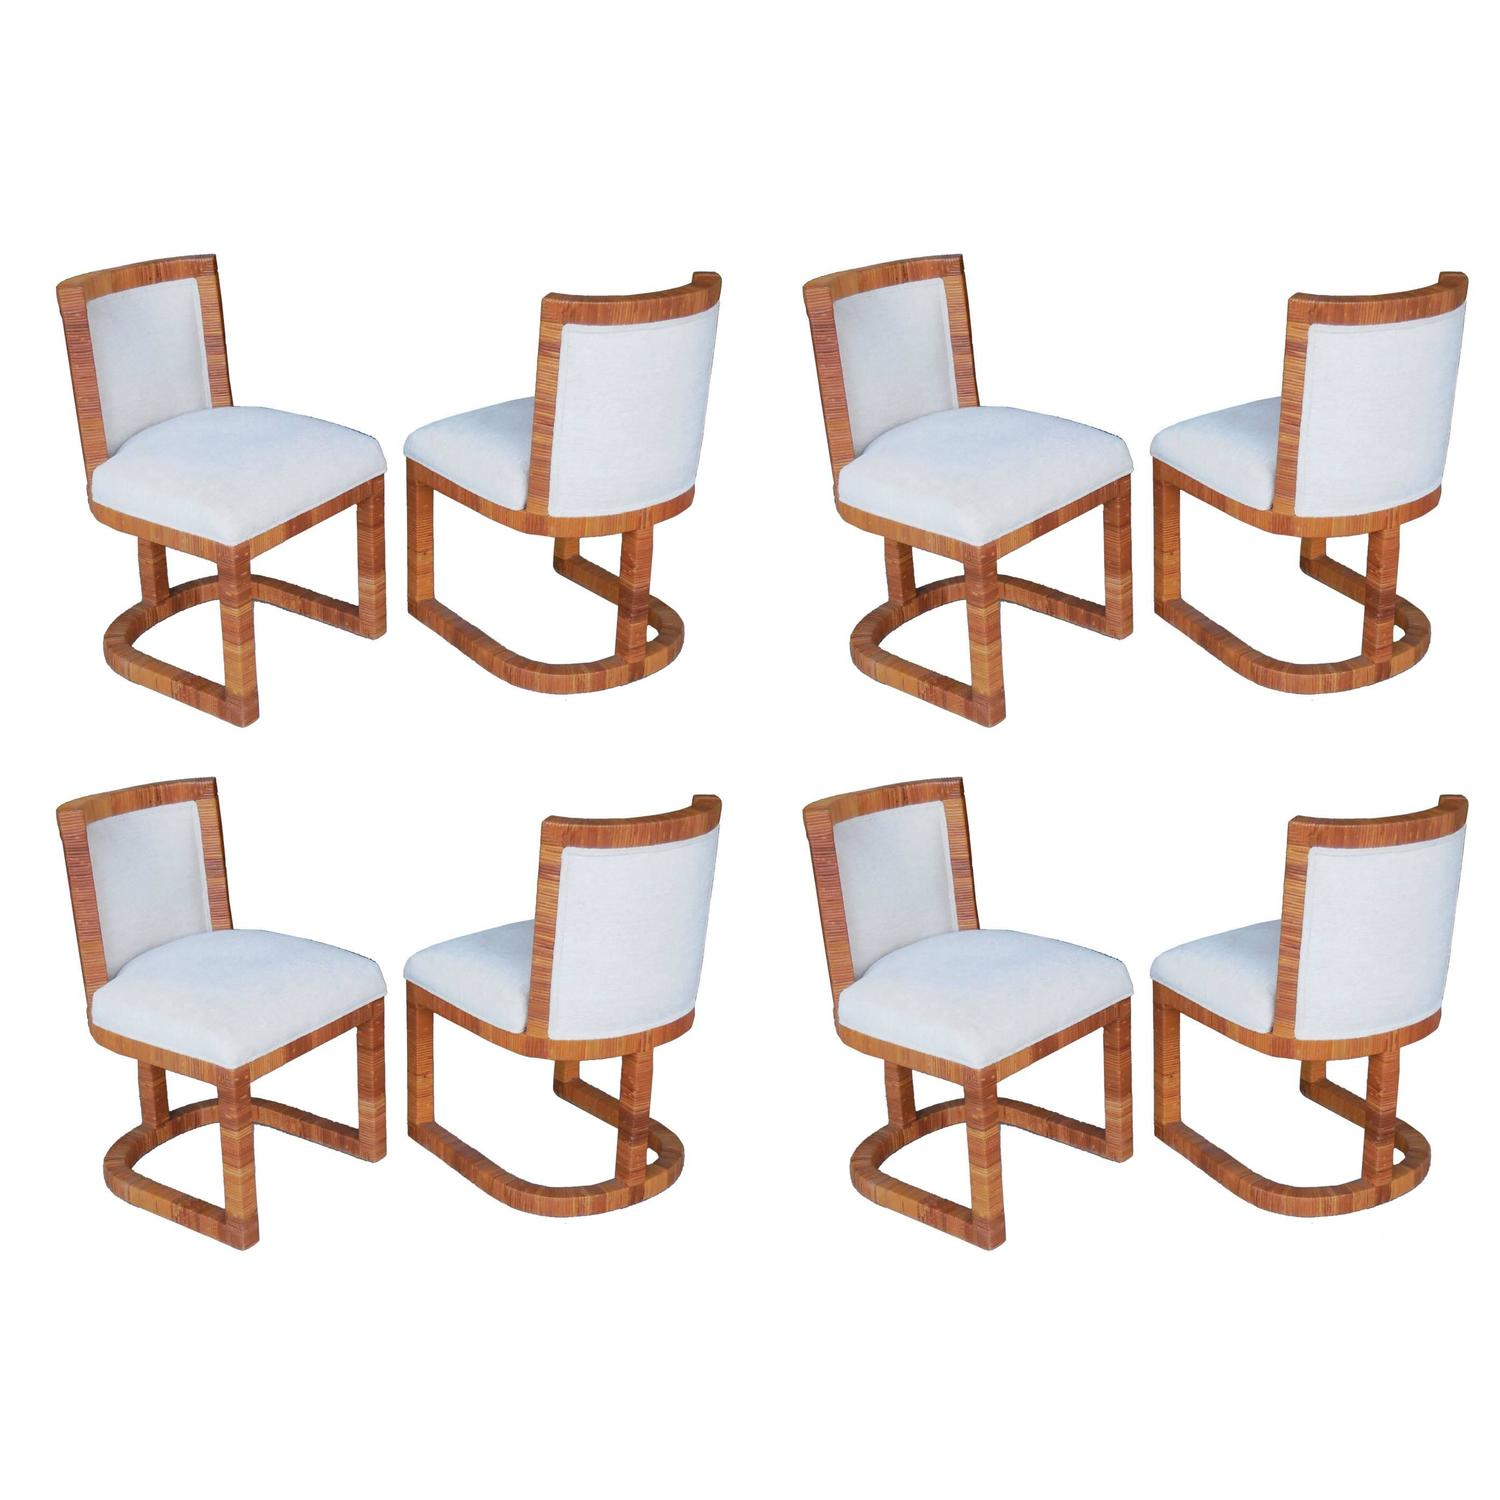 Eight Modern Italian Rattan Cane Dining Chairs 1970s For Sale At 1stdibs